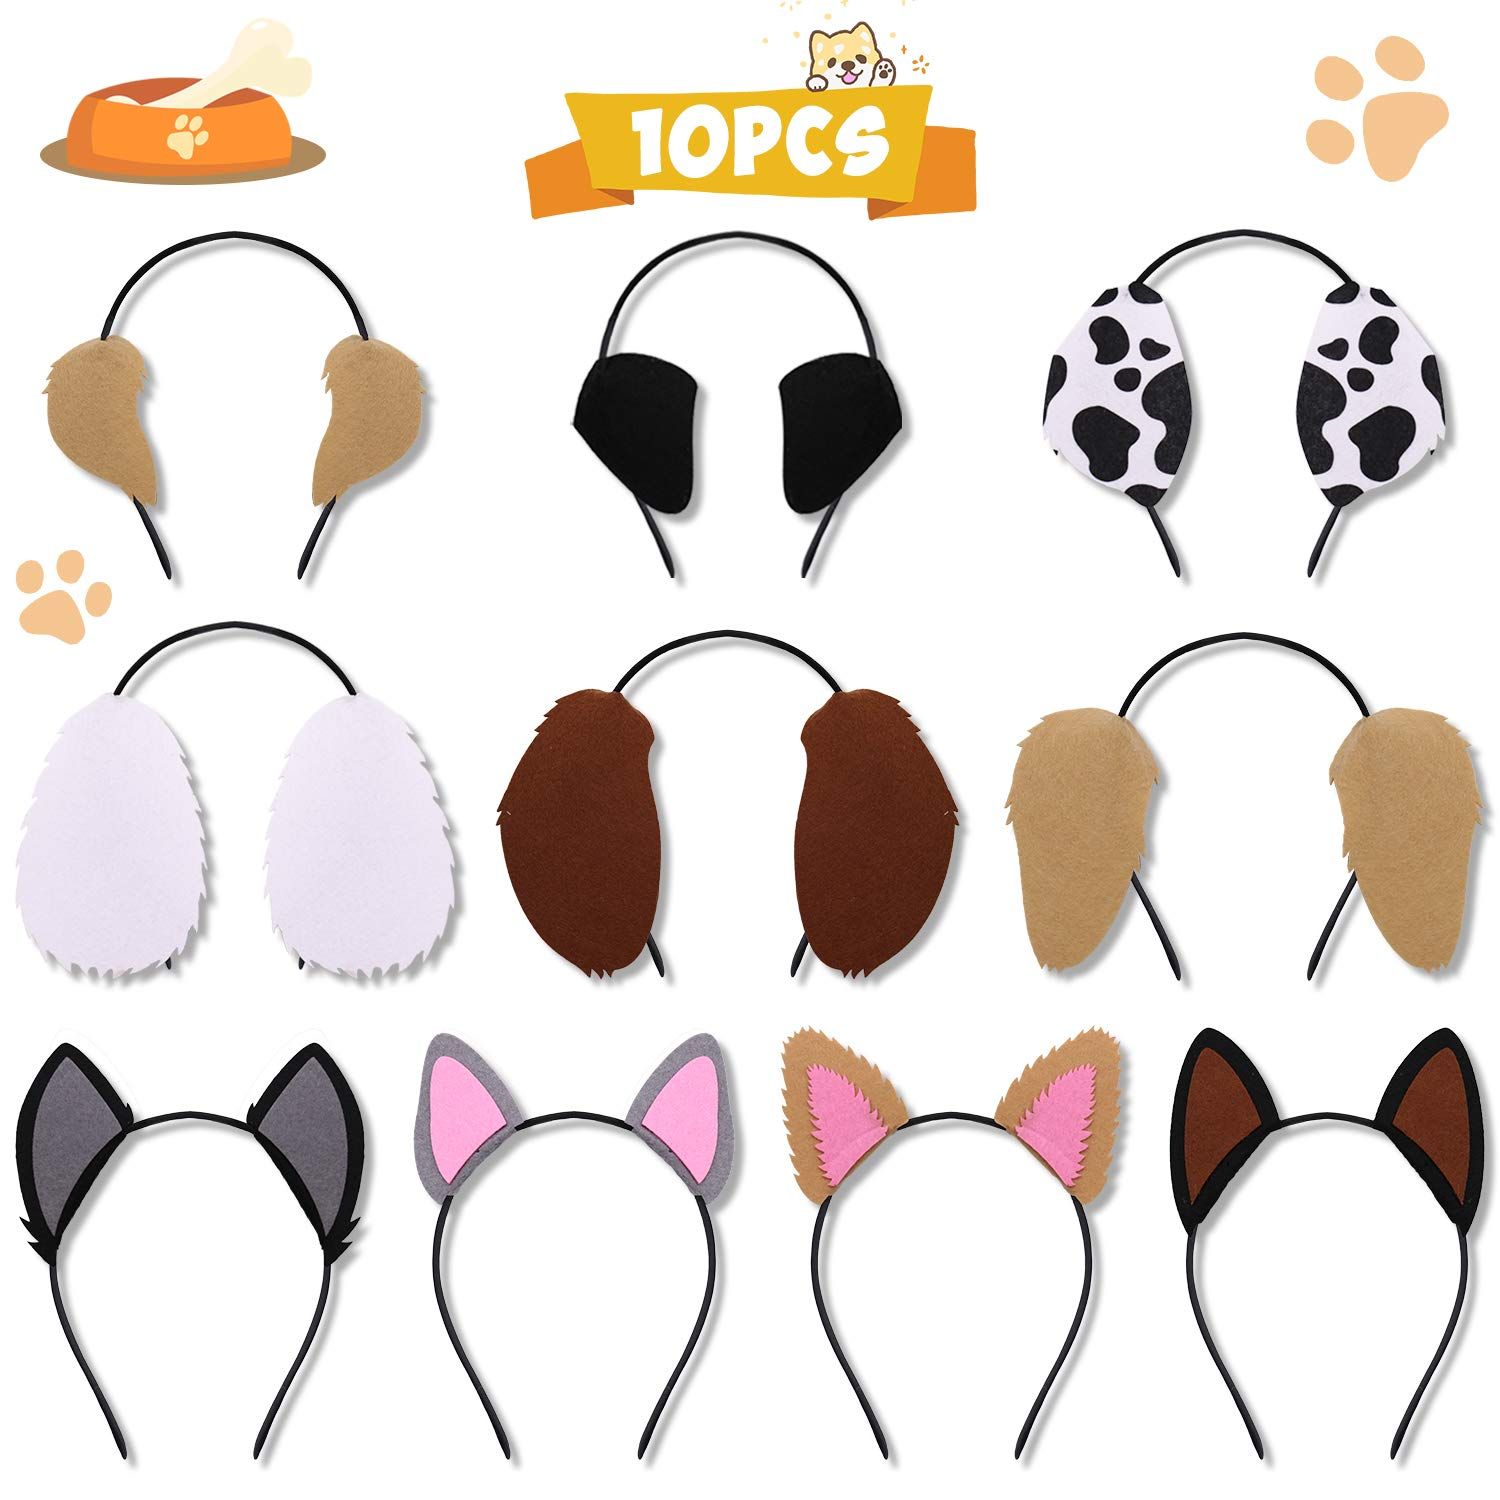 CiyvoLyeen Puppy Dogs Ear Headbands for Pet Birthday Party Favors Kids Toddlers Adults Photo Booth Props Costumes Dress-up Party Supplies Set of 10